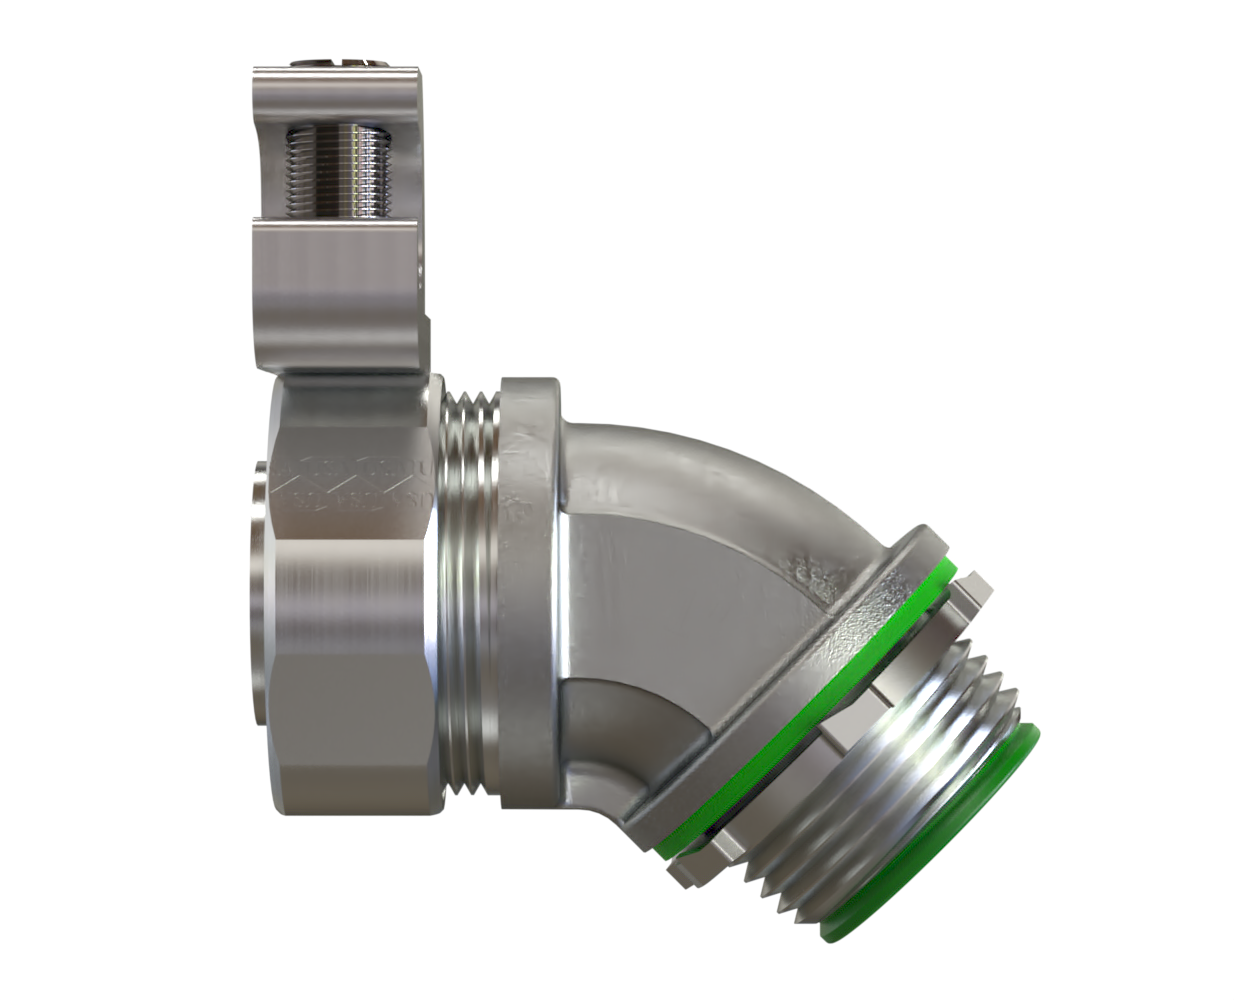 Liquid Tight 45 Fitting Seal Tight with ground lug